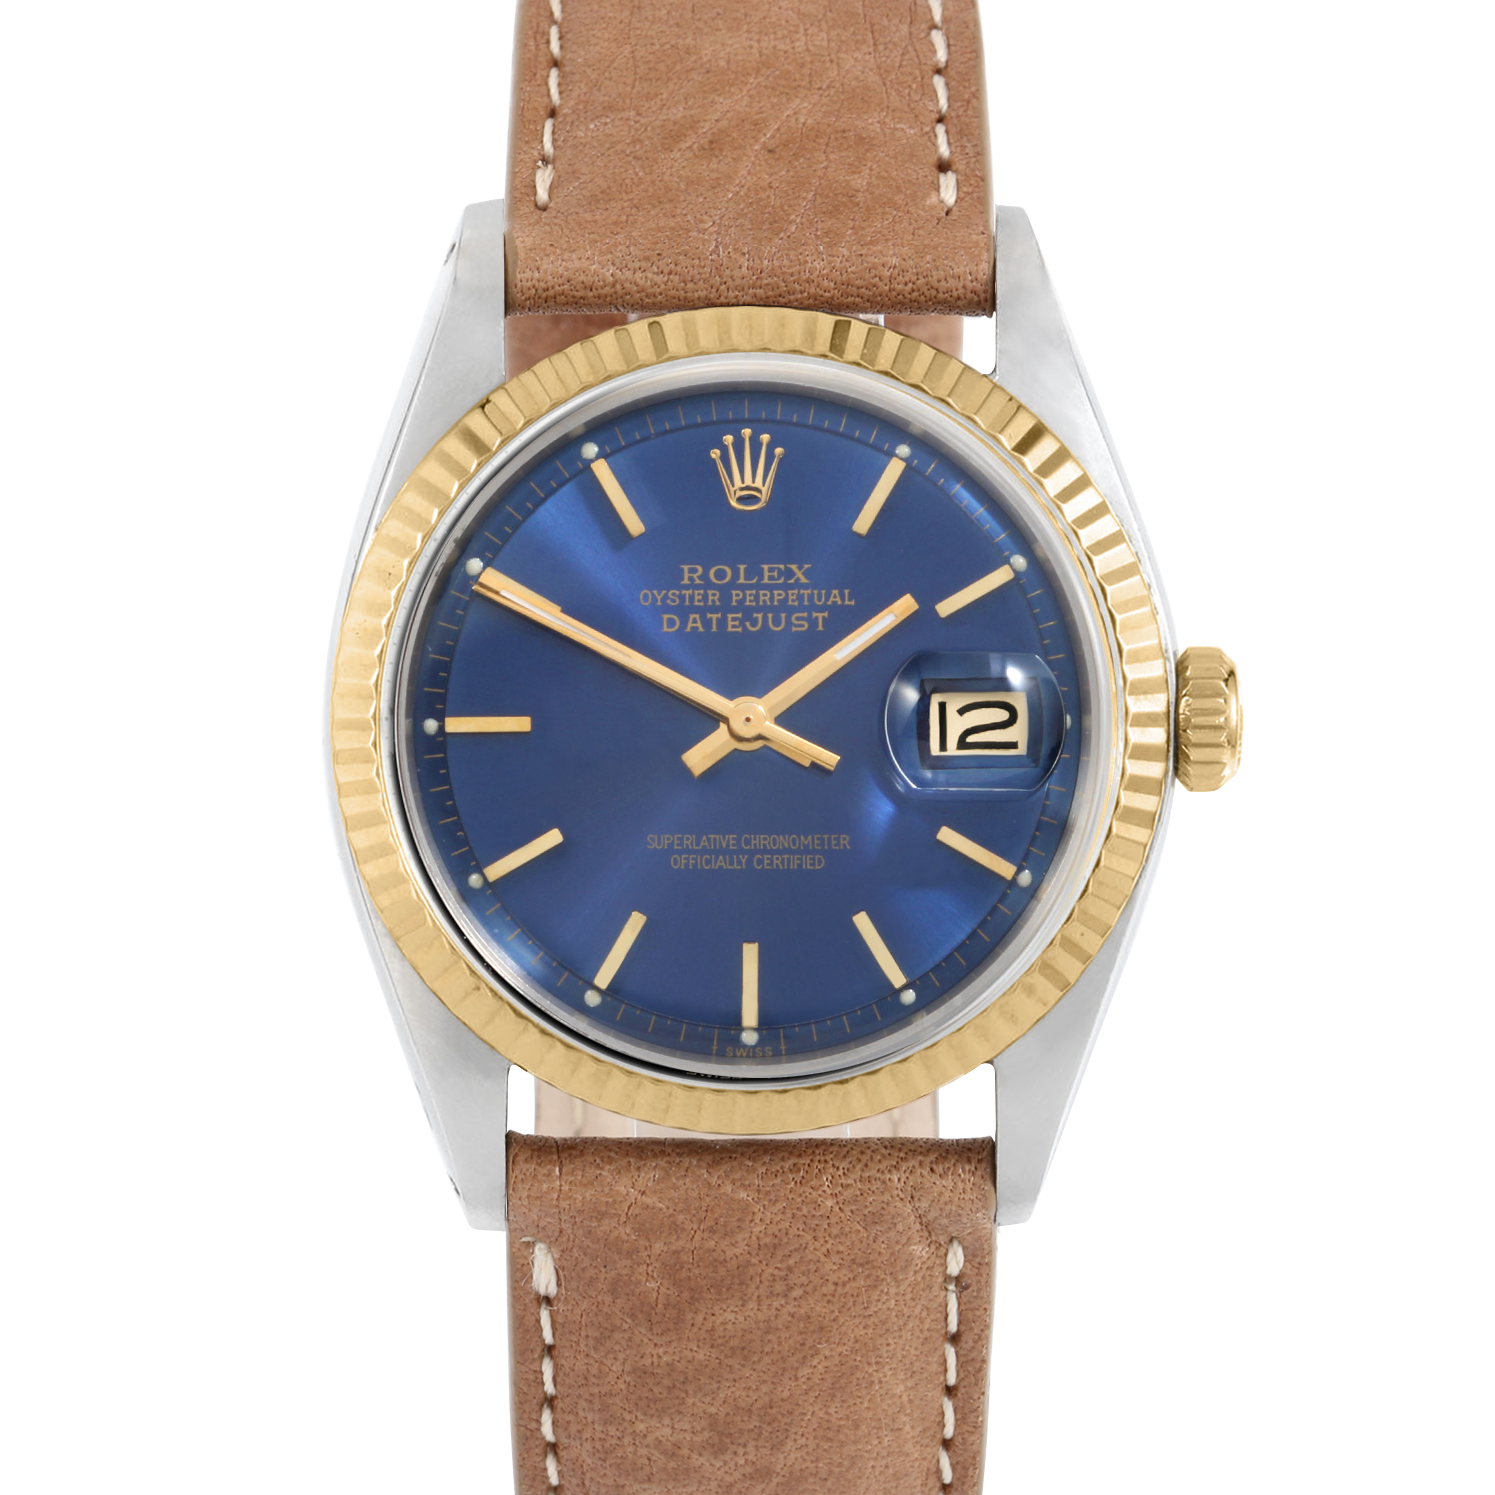 Rolex Datejust 36 1601 Yellow Gold & Stainless Steel, Refinished Blue Stick, Fluted Bezel On A Tan Texas Calf Leather Strap - Men's Pre-Owned Watch